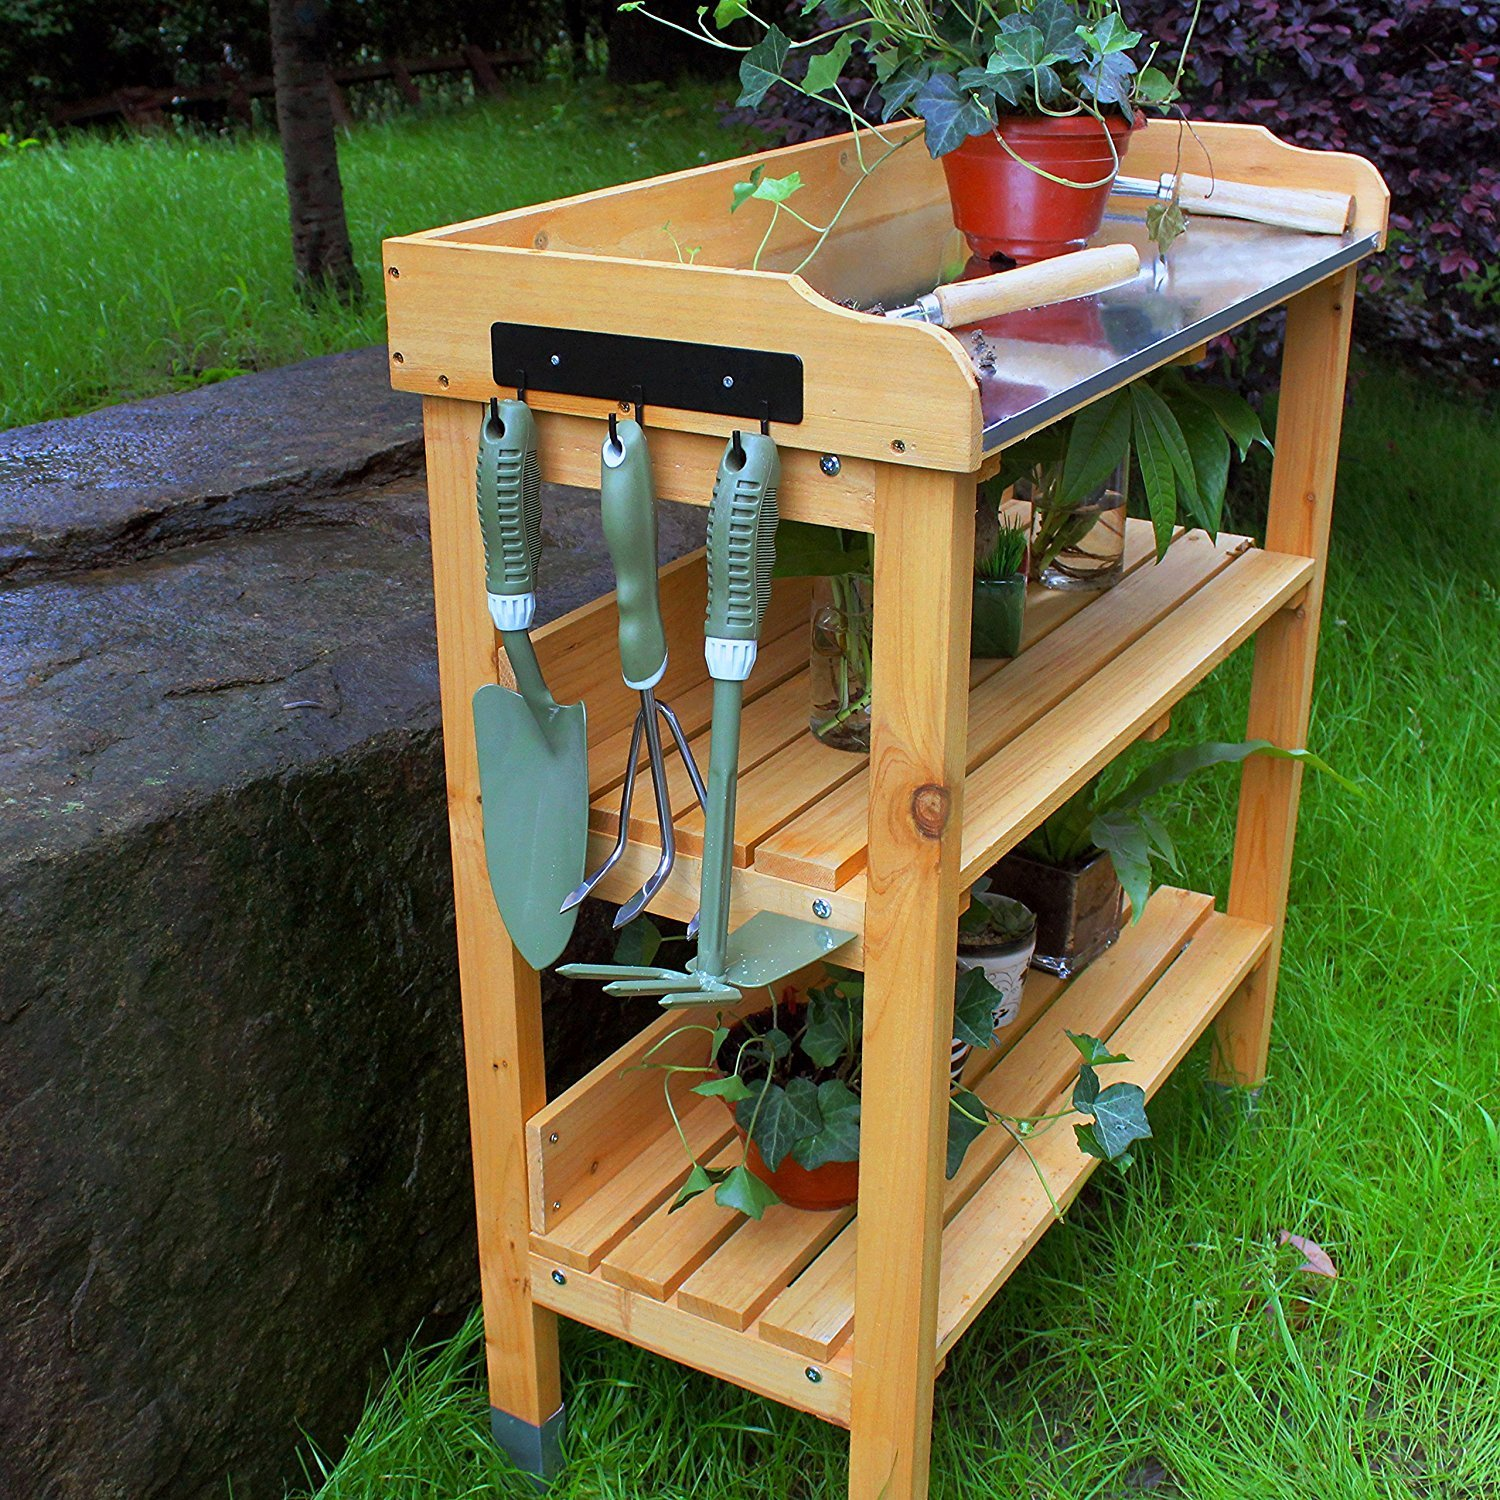 projects tables best garden corner potting benches bench woodworking sheds images and on pinterest talmaks